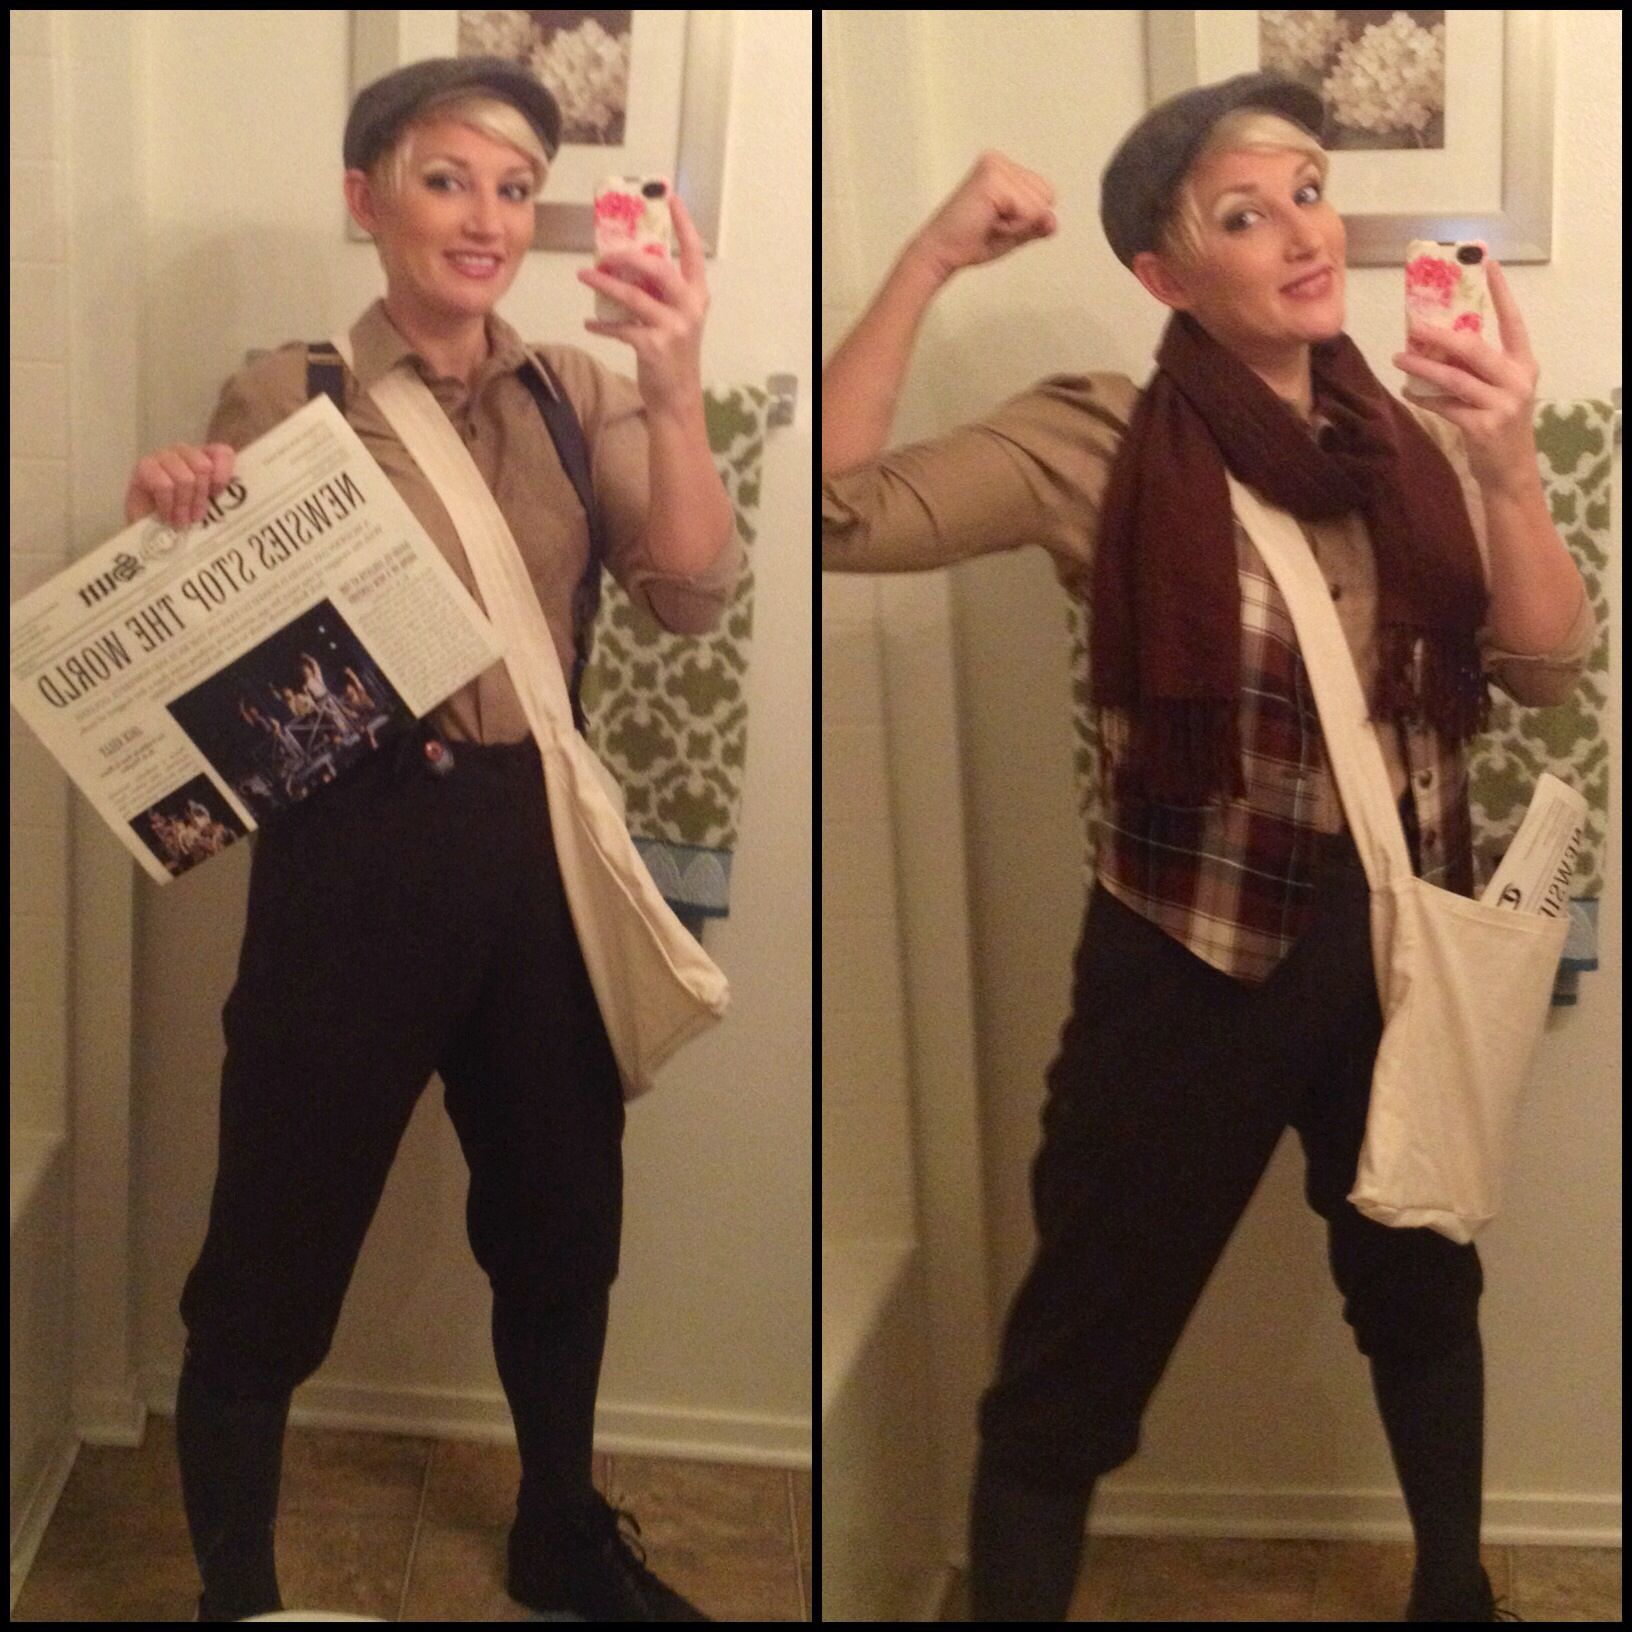 DIY Newspaper Boy Costume | DIY Costume Ideas | Pinterest ...